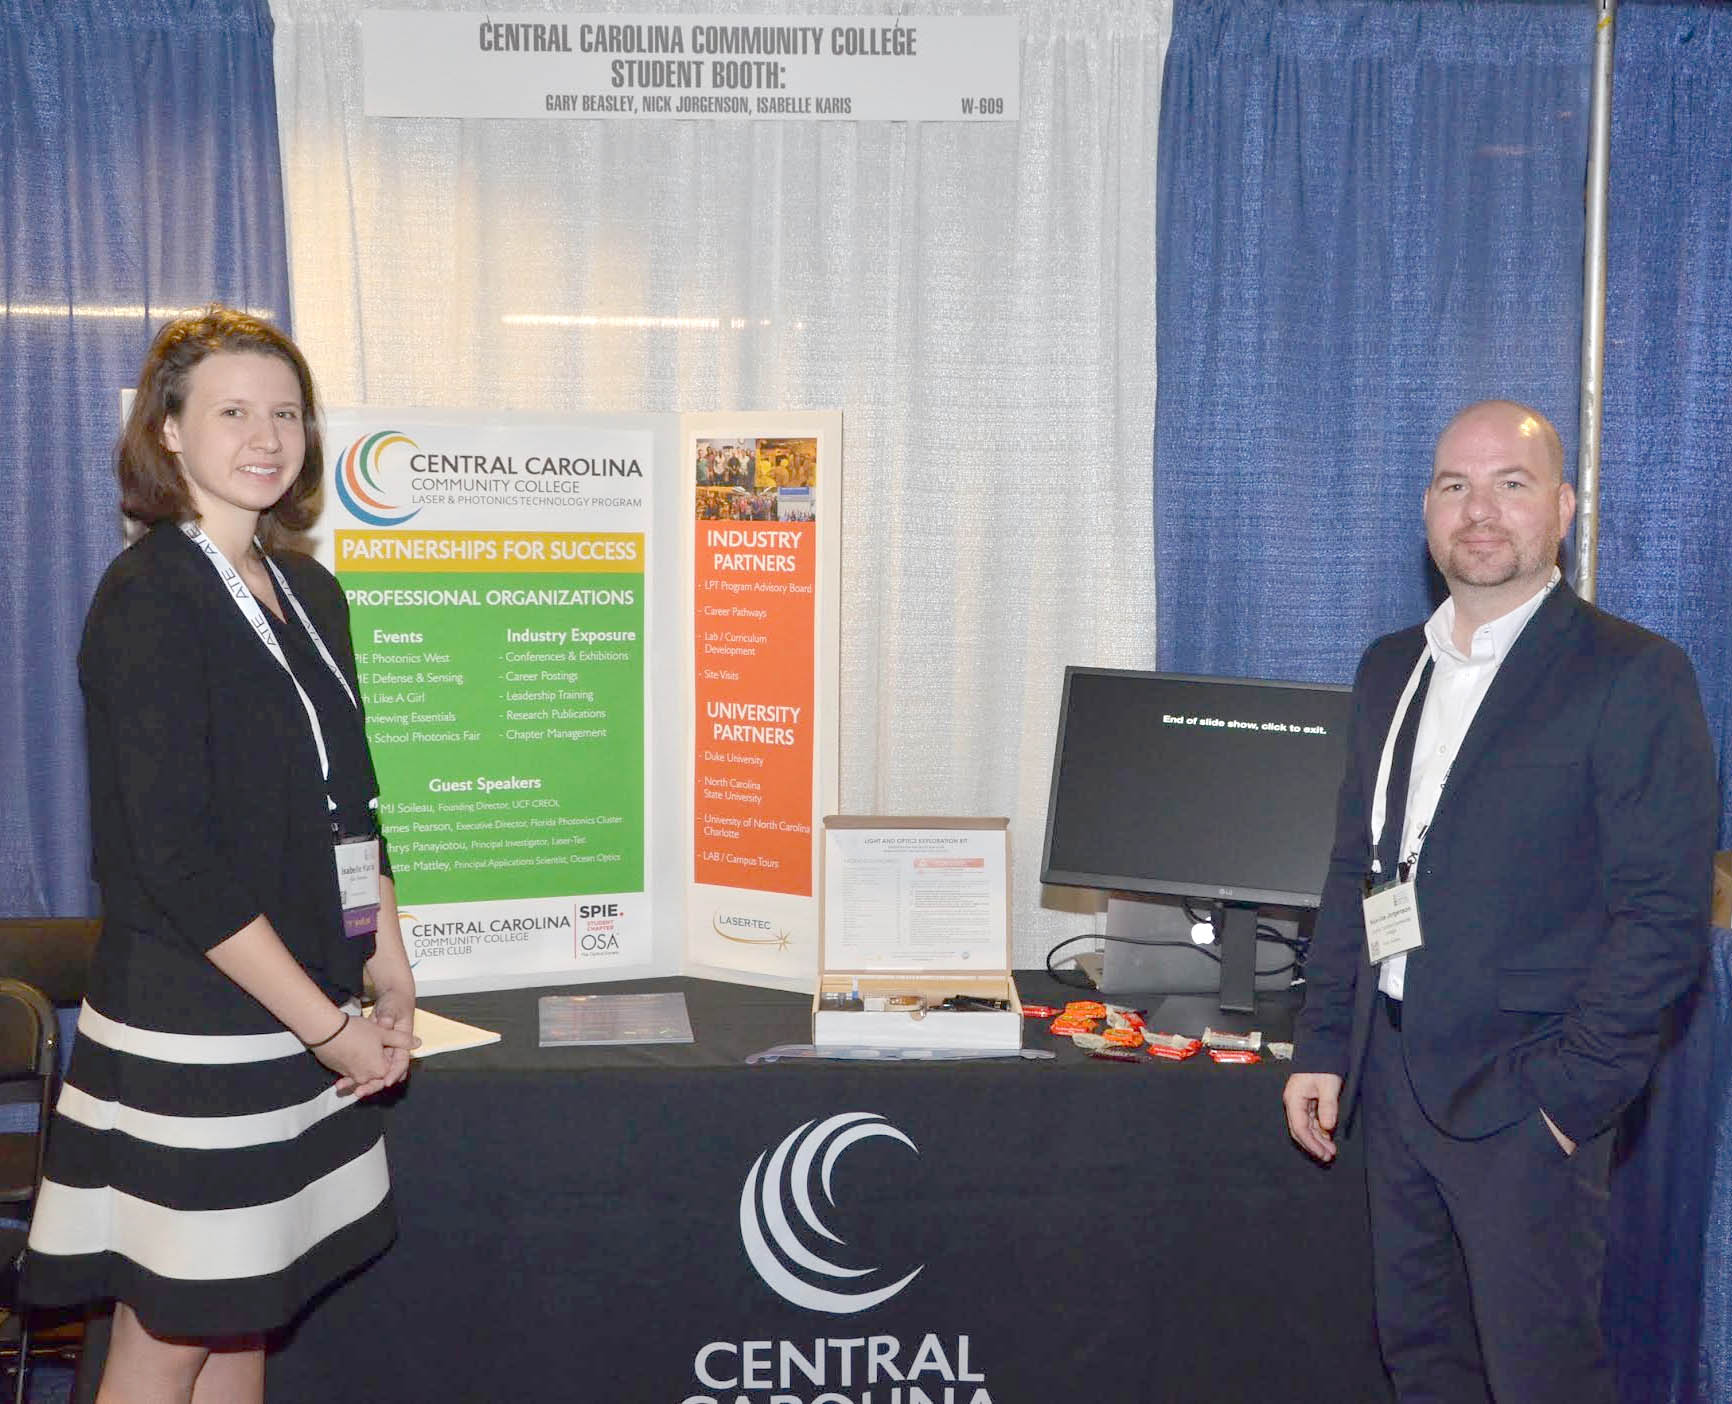 Click to enlarge,  Central Carolina Community College students Isabelle Karis and Nickolas Jorgenson are pictured at the CCCC student booth at the recent National Advanced Technological Education (ATE) Principal Investigators Conference in Washington, D.C.